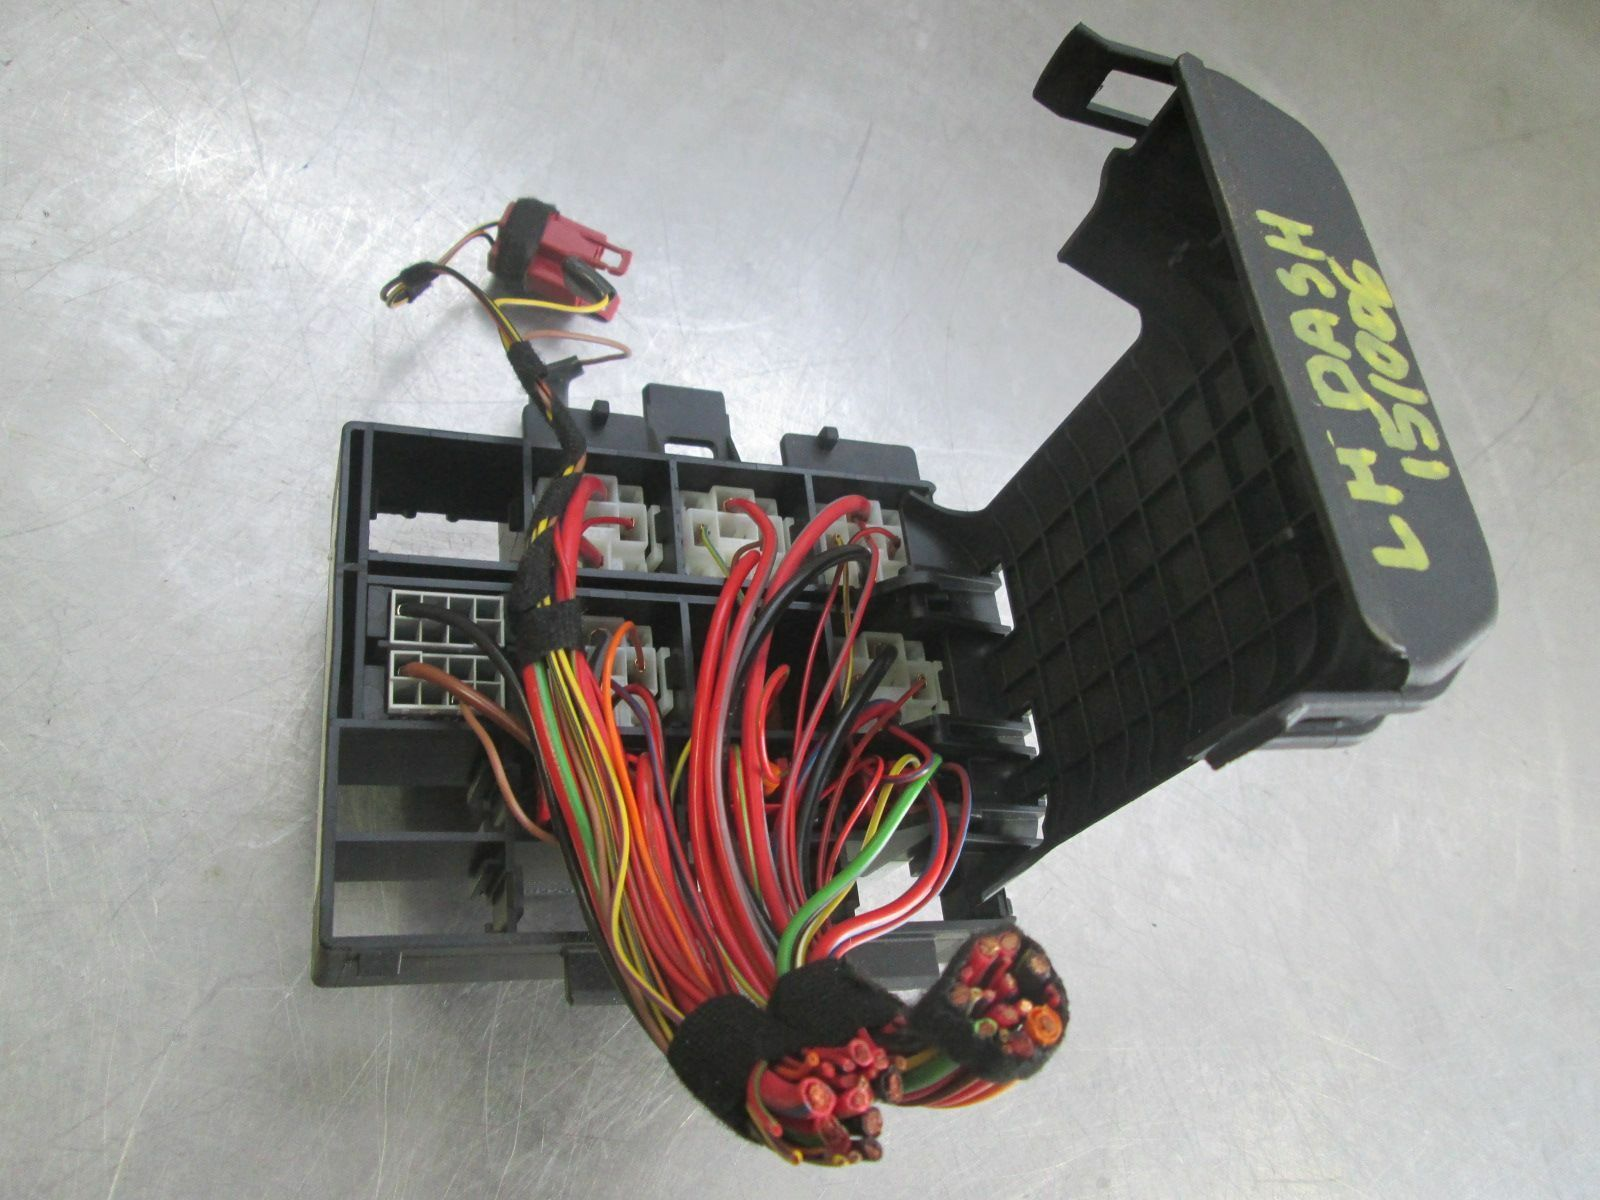 Porsche 911 Fuse Box For Sale - List of Wiring Diagrams on